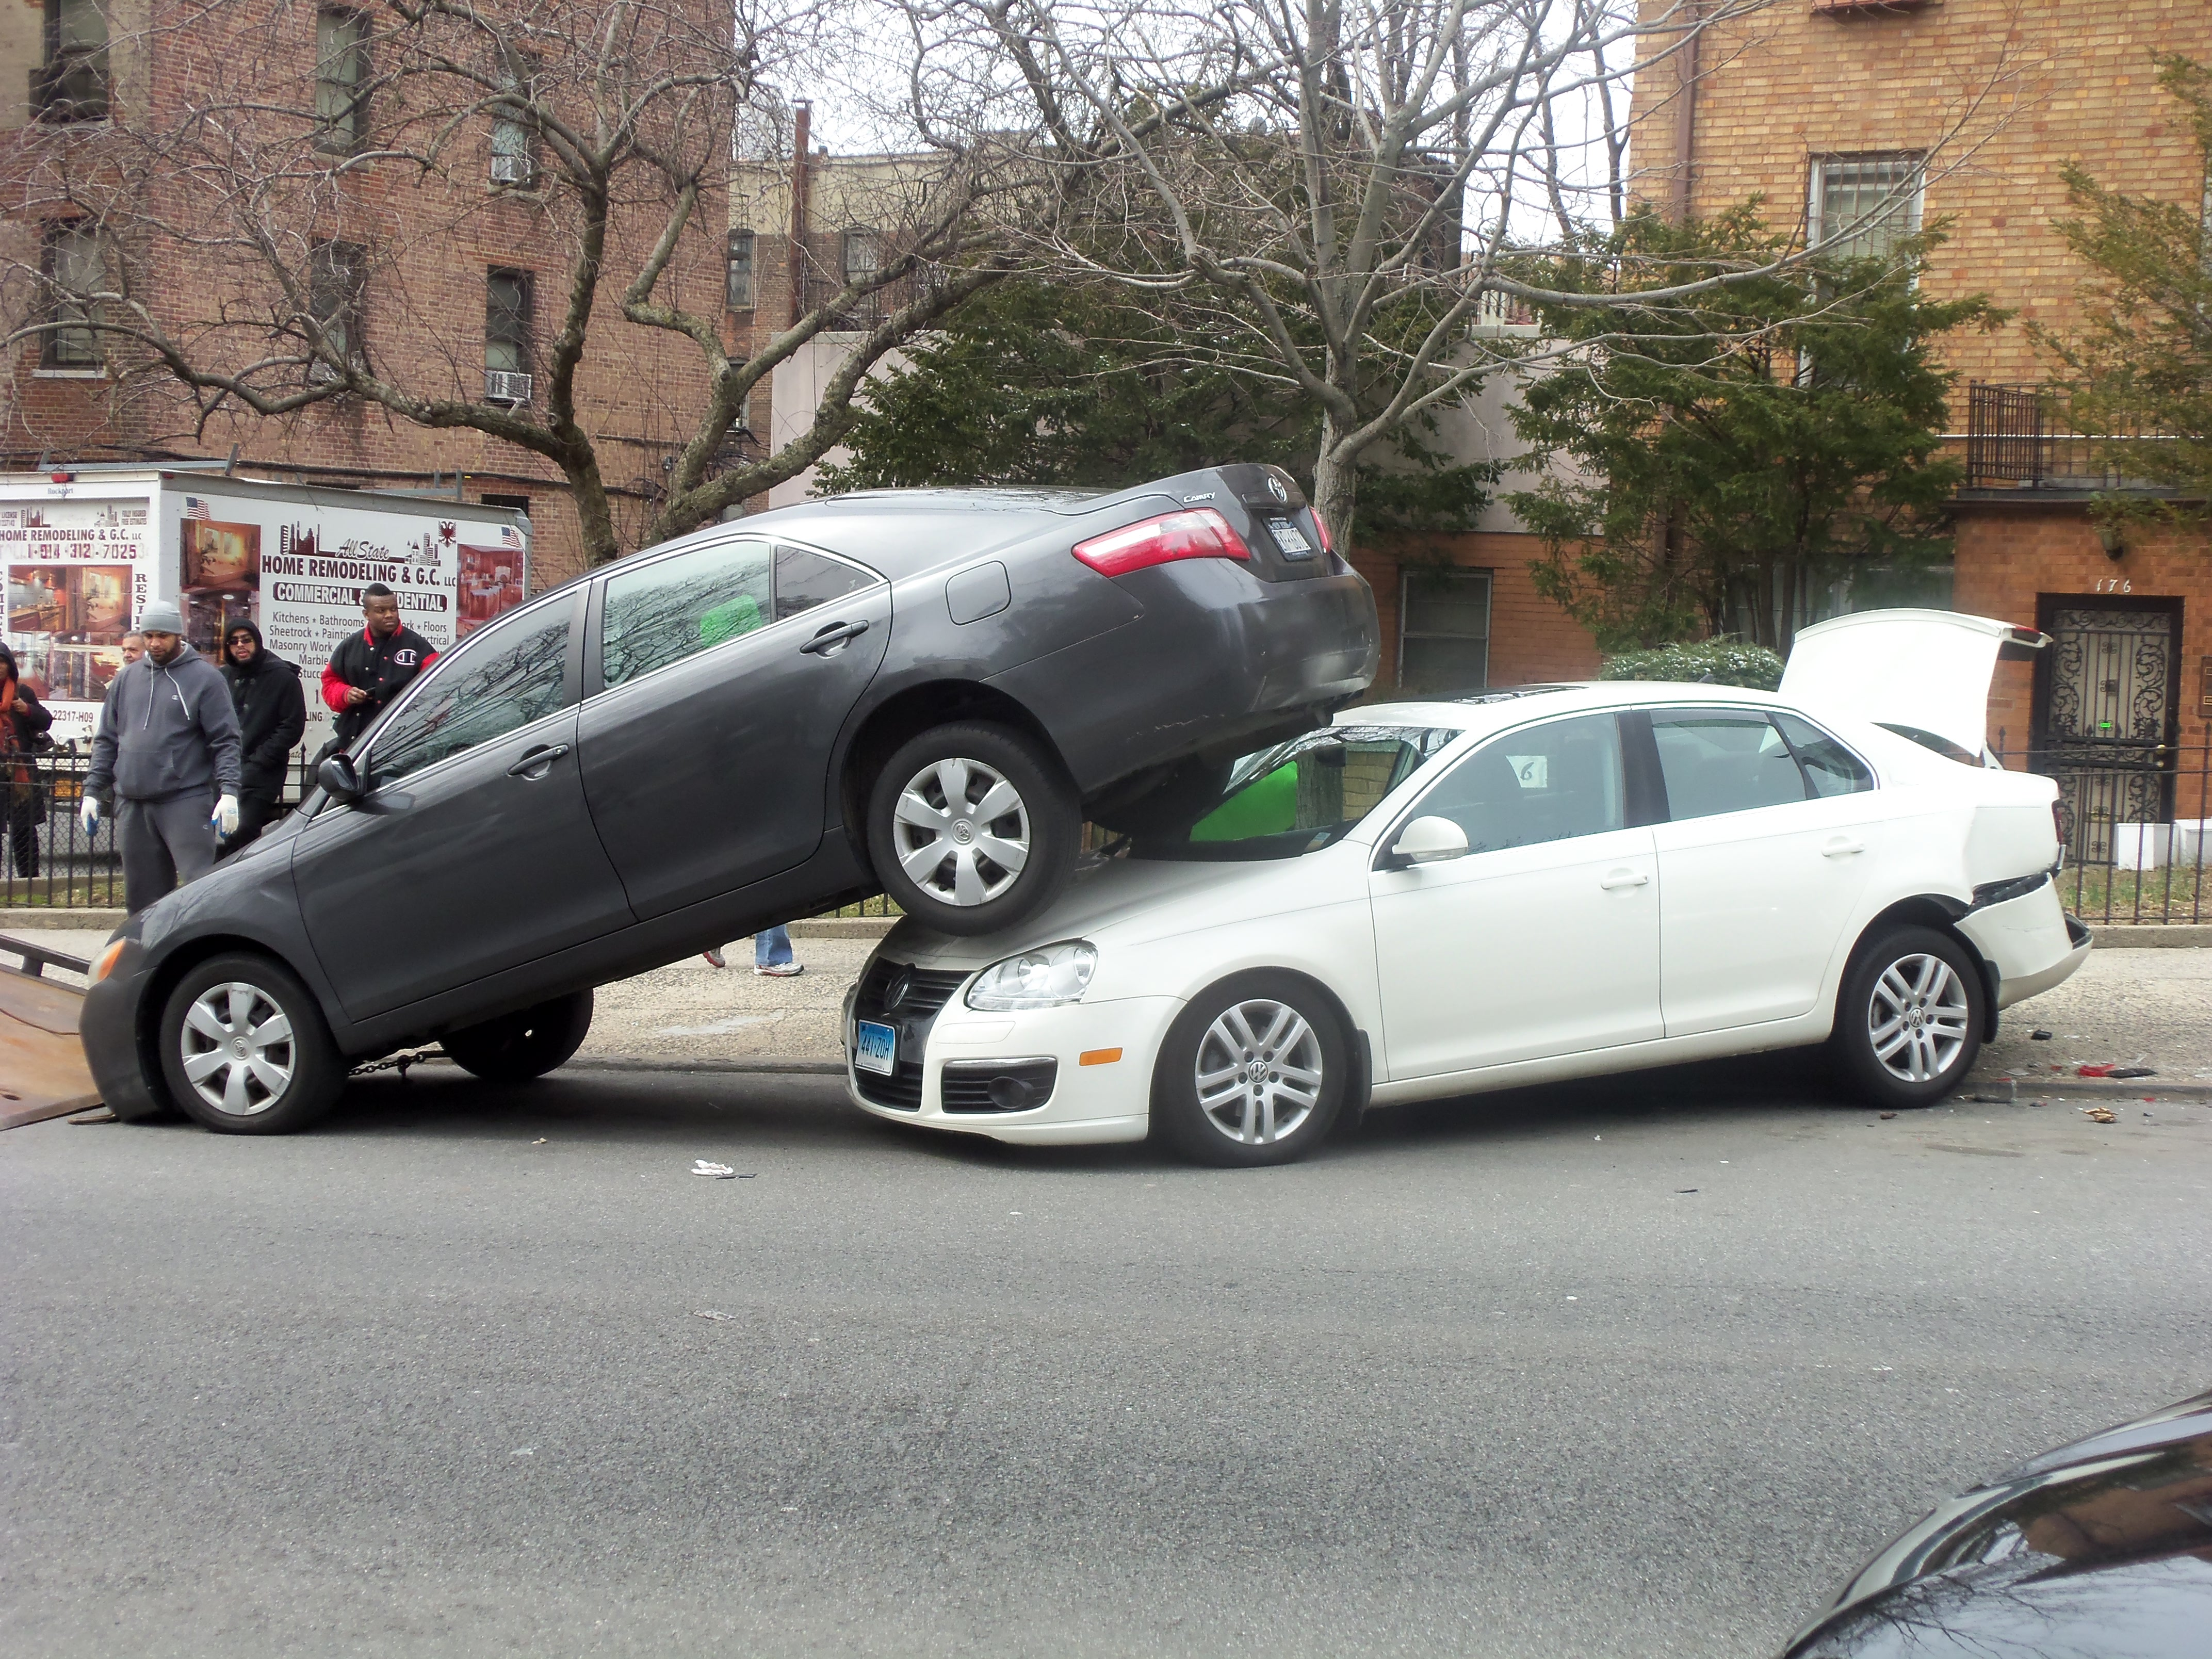 one car on top of another